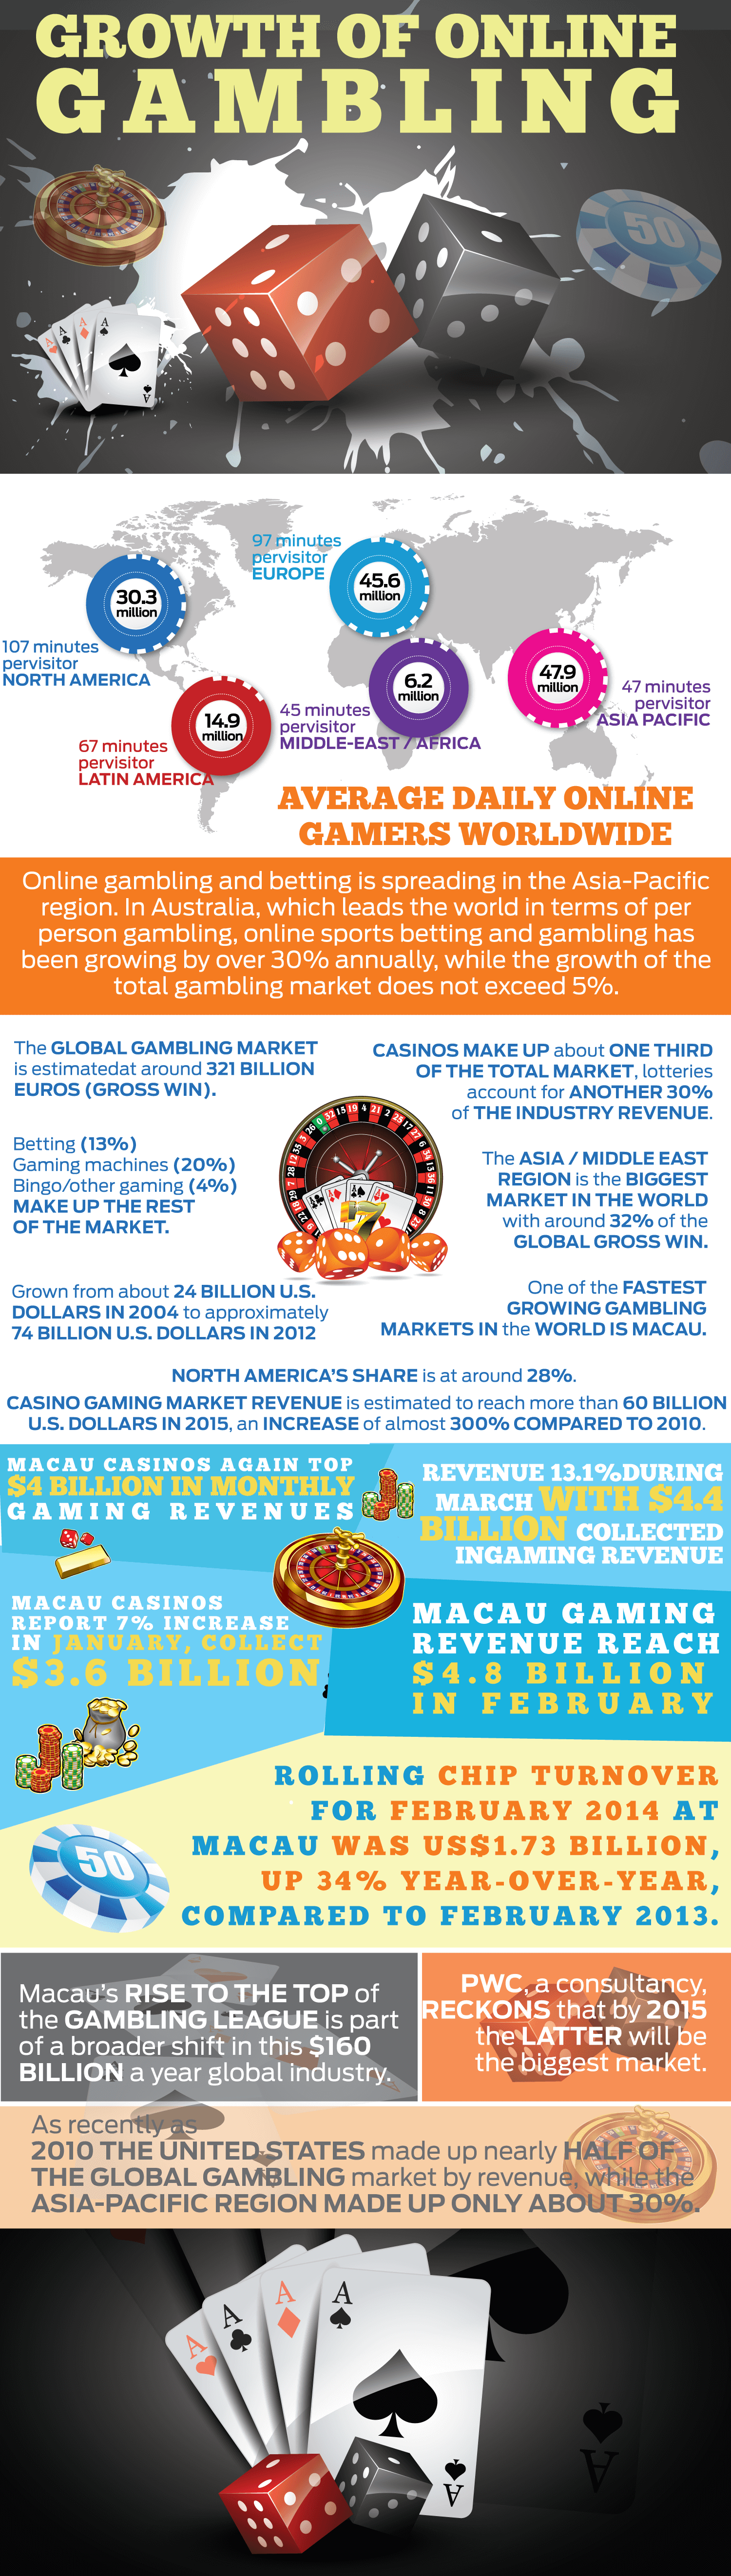 growth-of-online-gambling-infographic